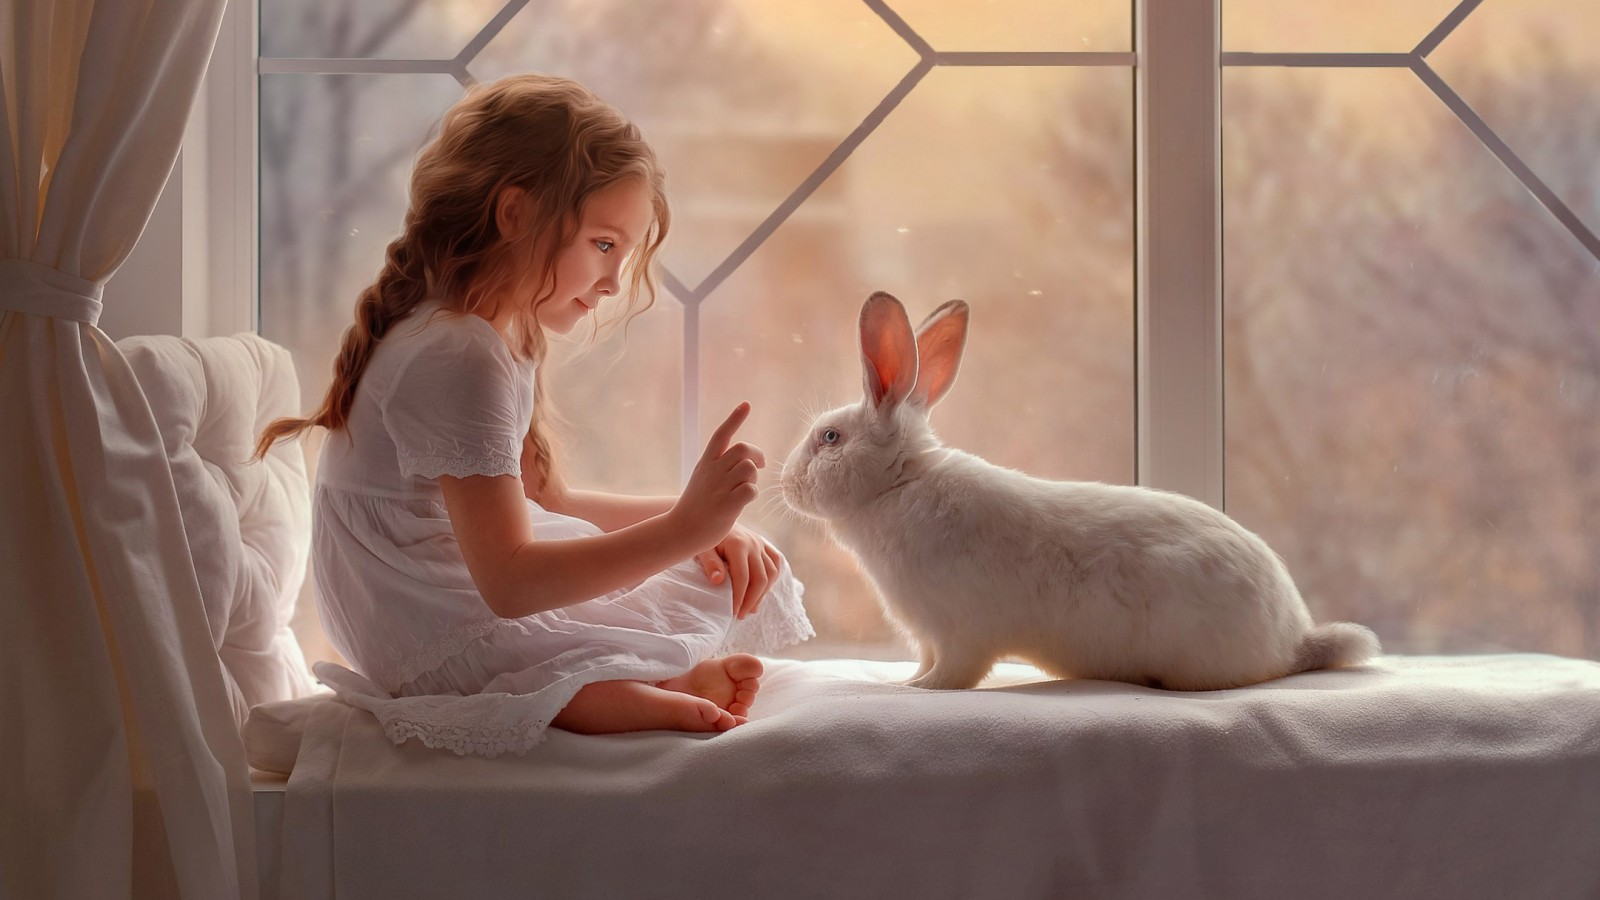 Baby Pics Cute Wallpapers Cute Girl And Rabbit Wallpapers Hd Wallpapers Id 26613